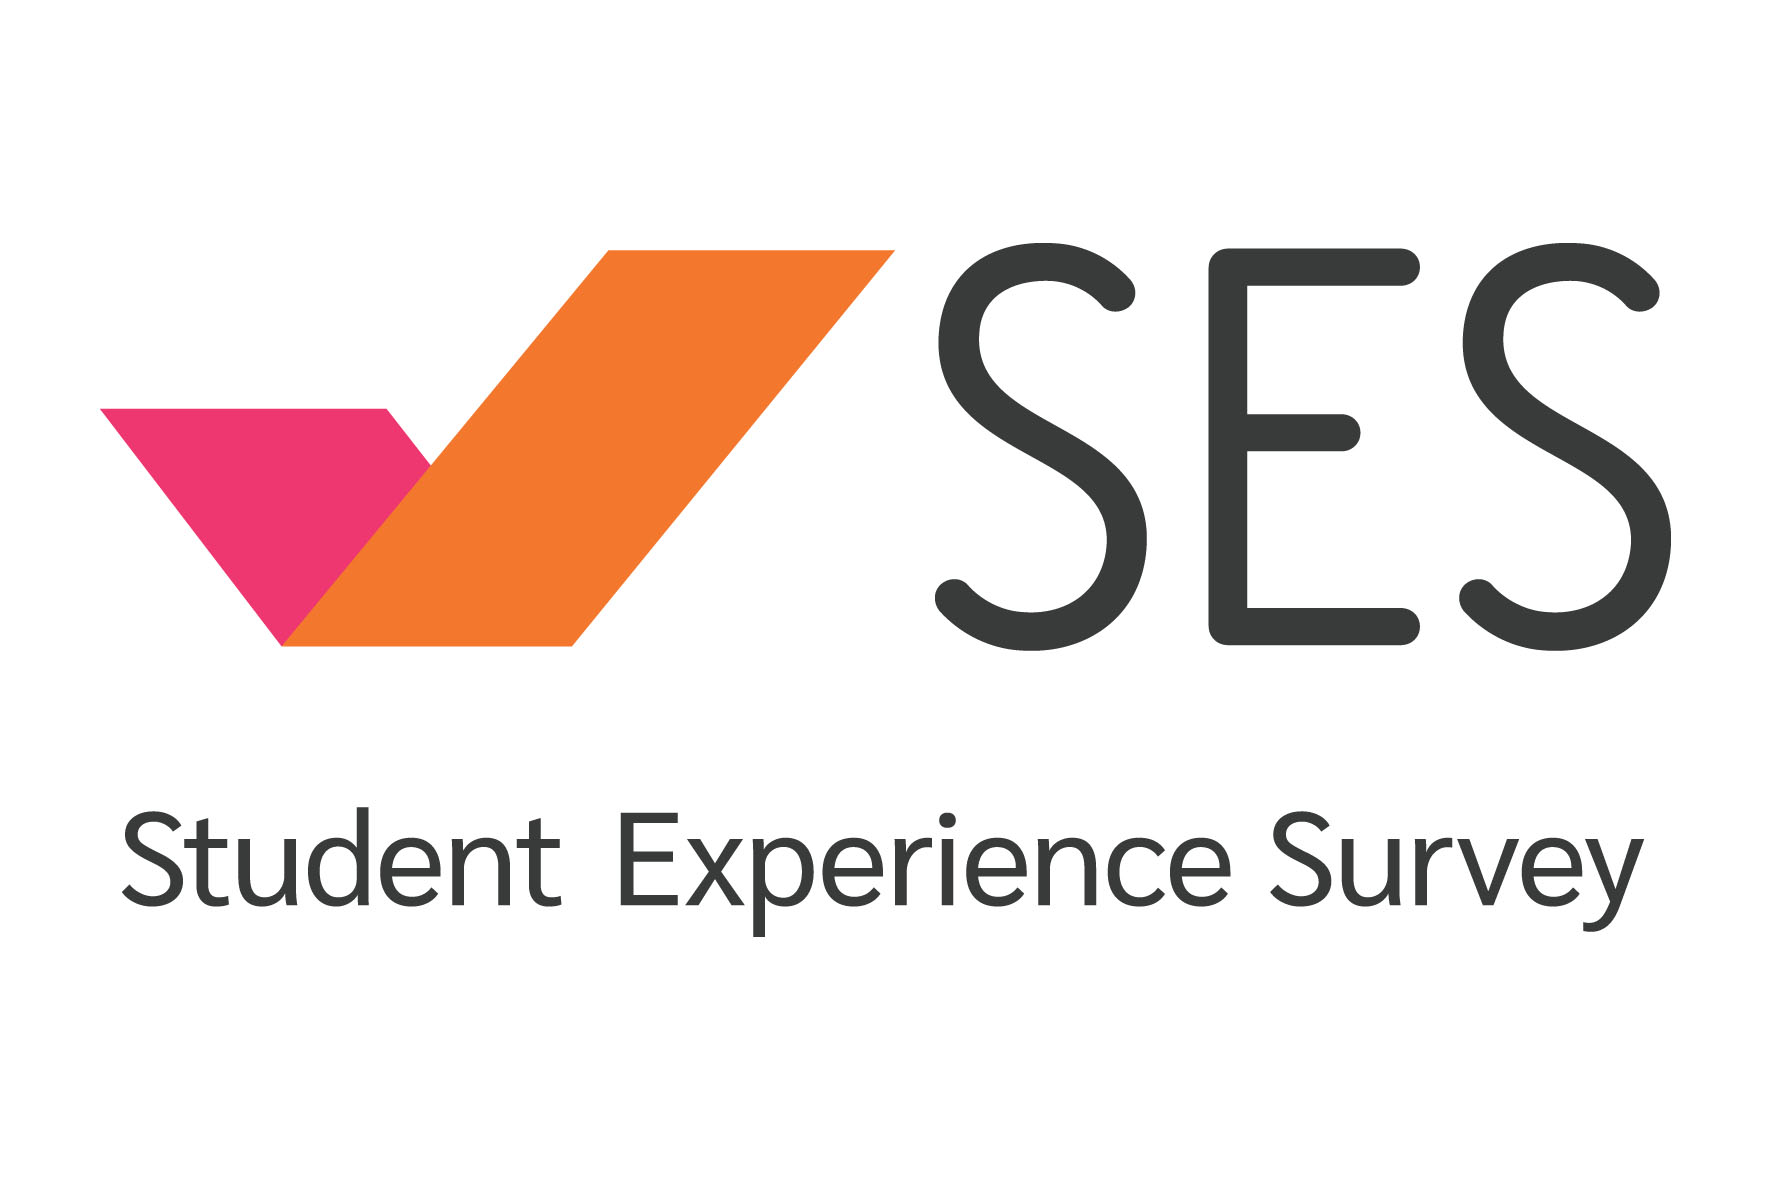 Student Experience Survey (SES) logo